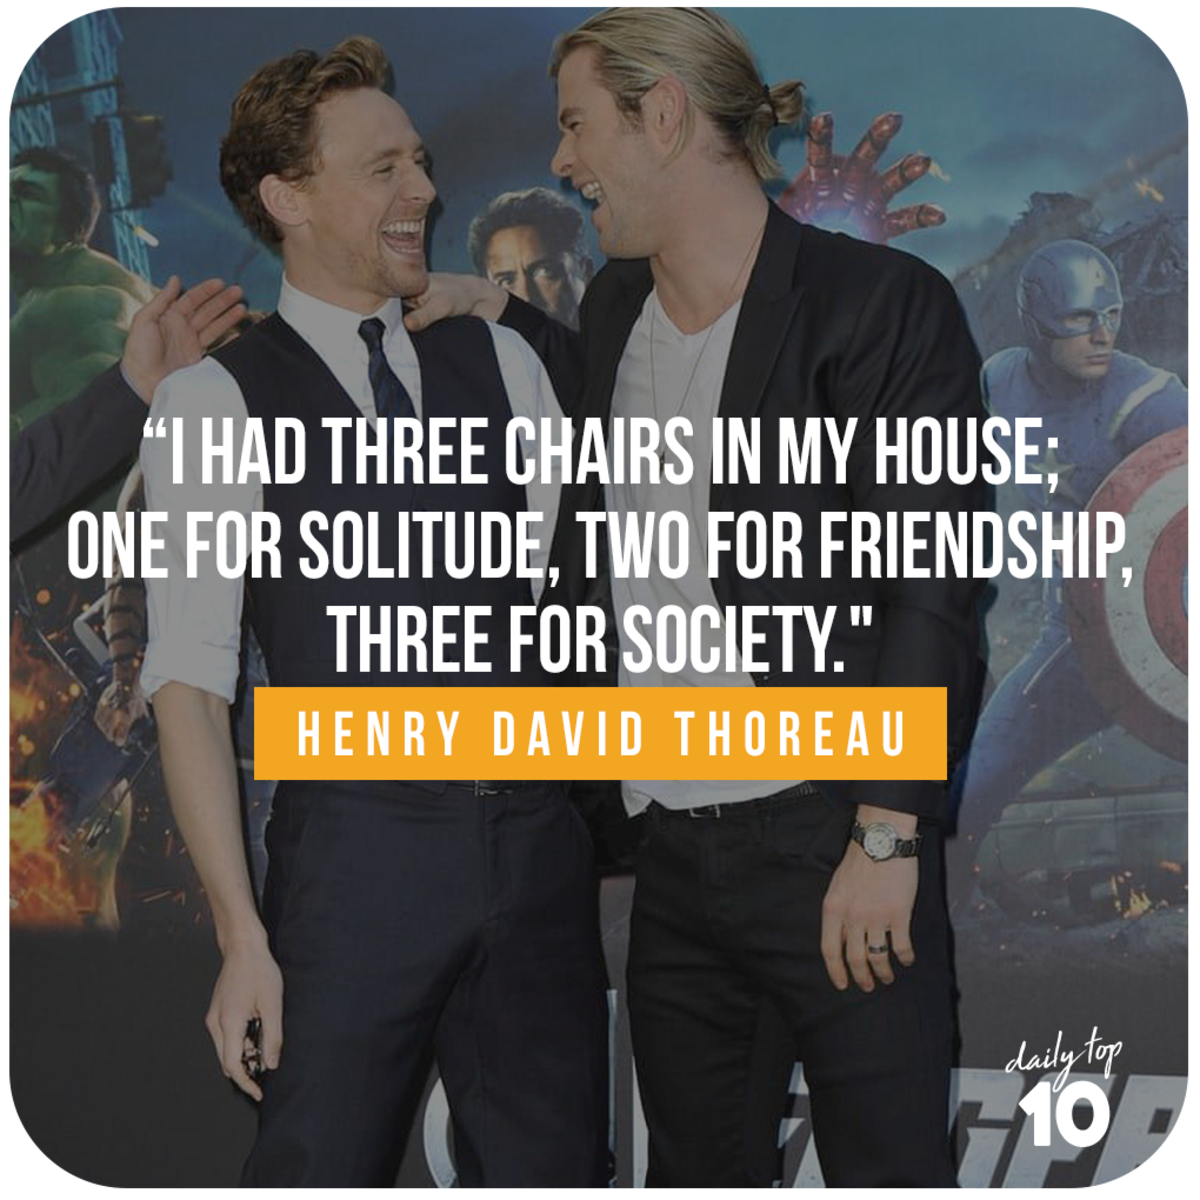 Friendship quote with Chris Hemsworth and Tom Hiddleston.